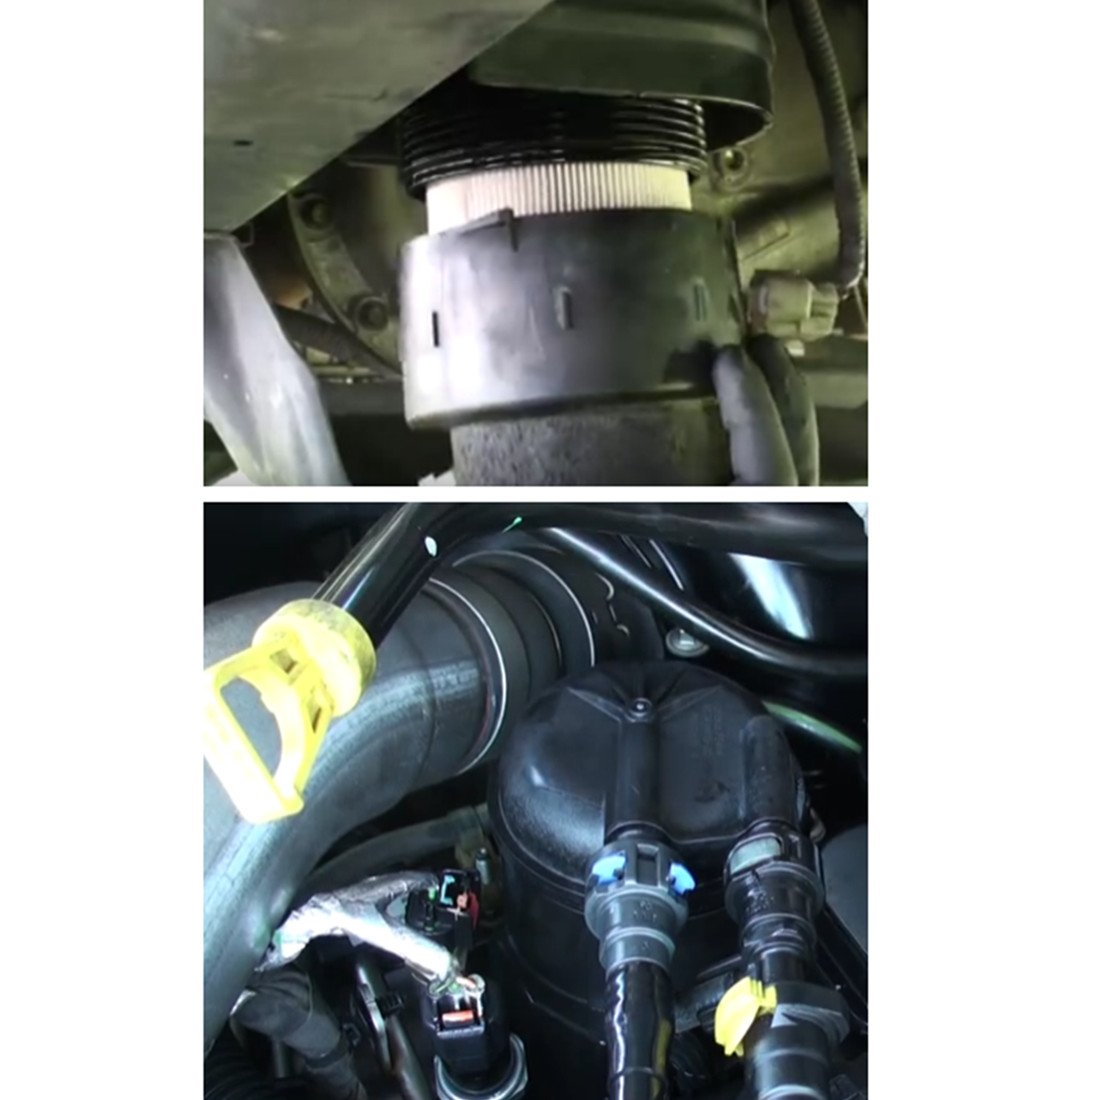 Fd 4615 5 Micron Fuel Water Separator Filter For Ford 2011 F 250 Cap Truck Pickup 2016 350 450 550 Super Duty 67l V8 Diesel Engines